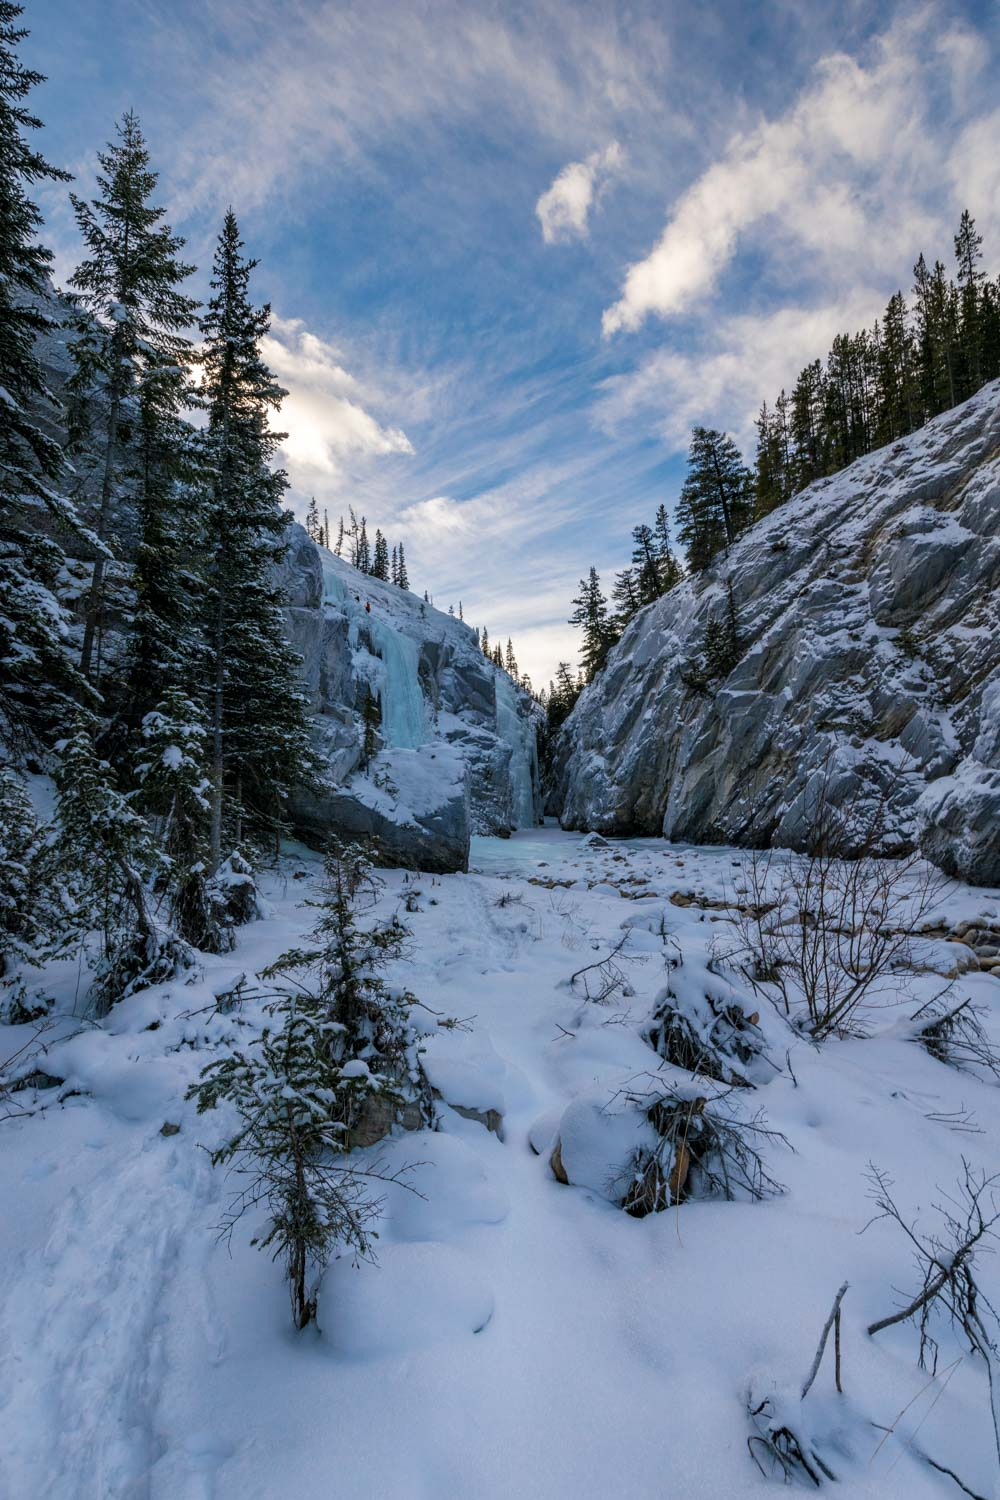 Icefalls in the Cline River Canyon